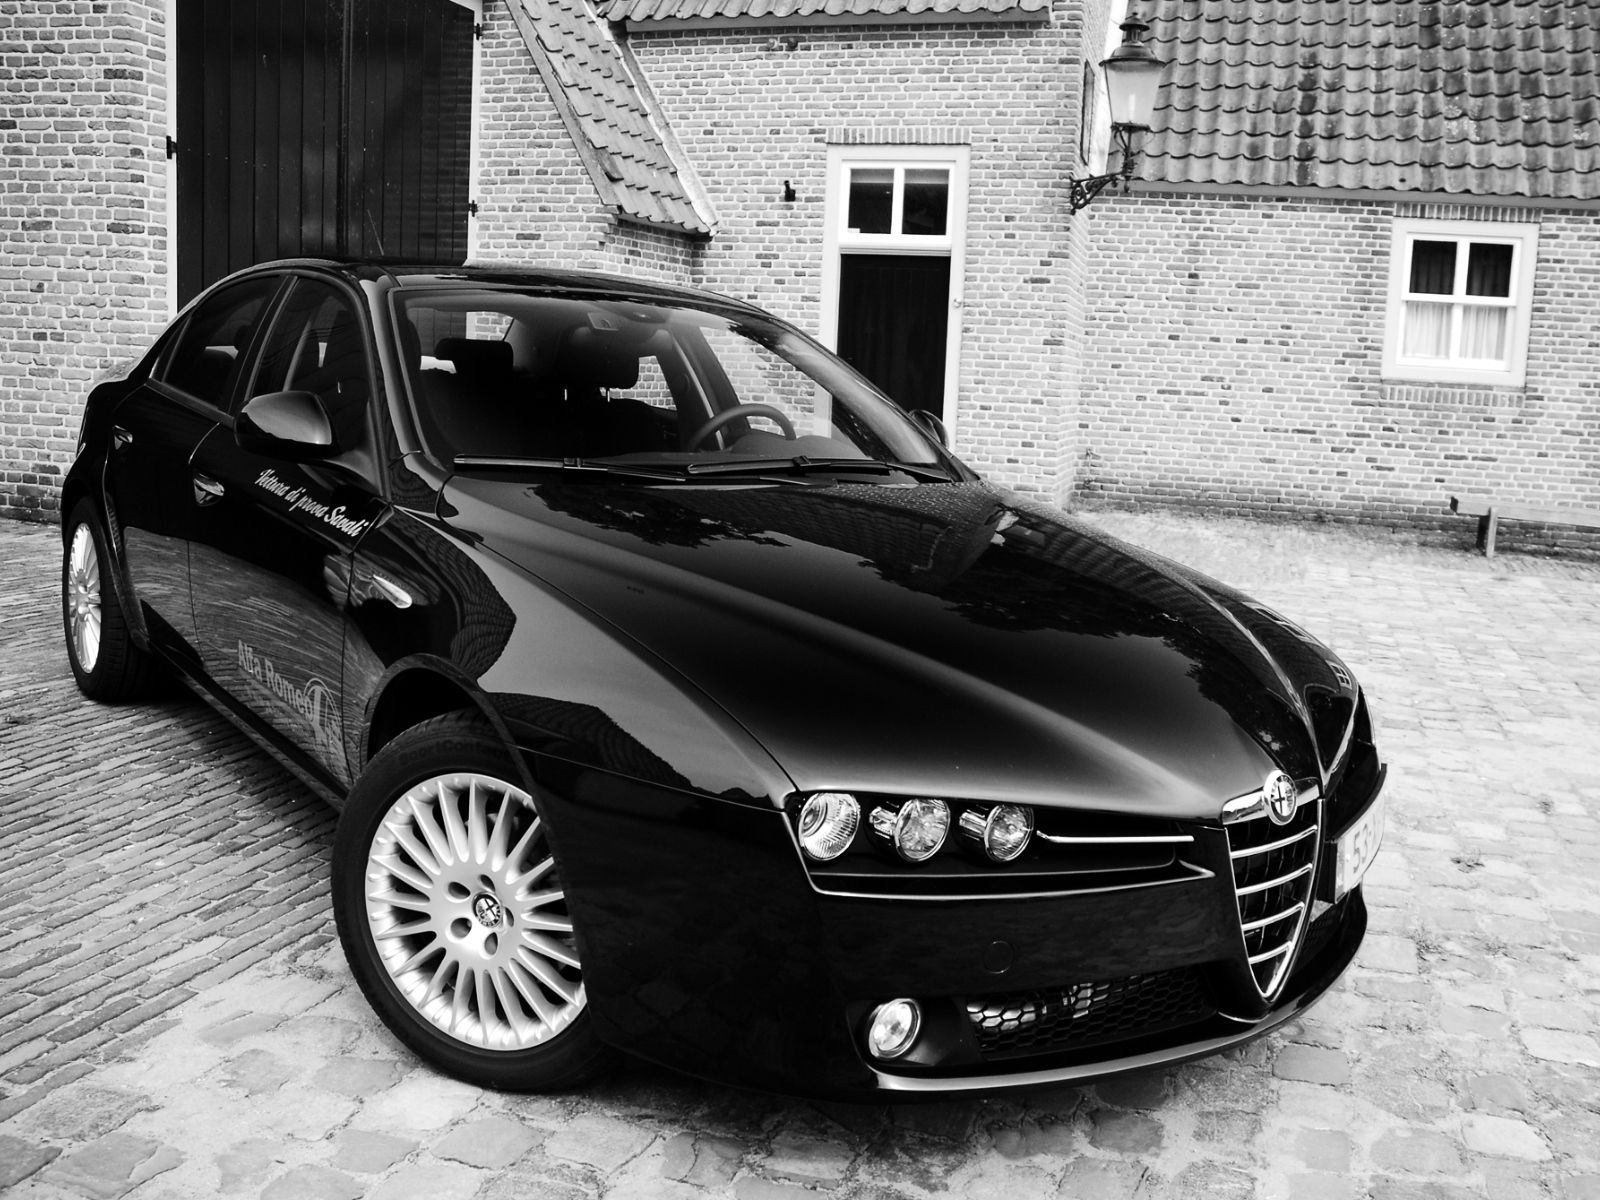 Alfa Romeo 159 Wallpapers and Backgrounds Image